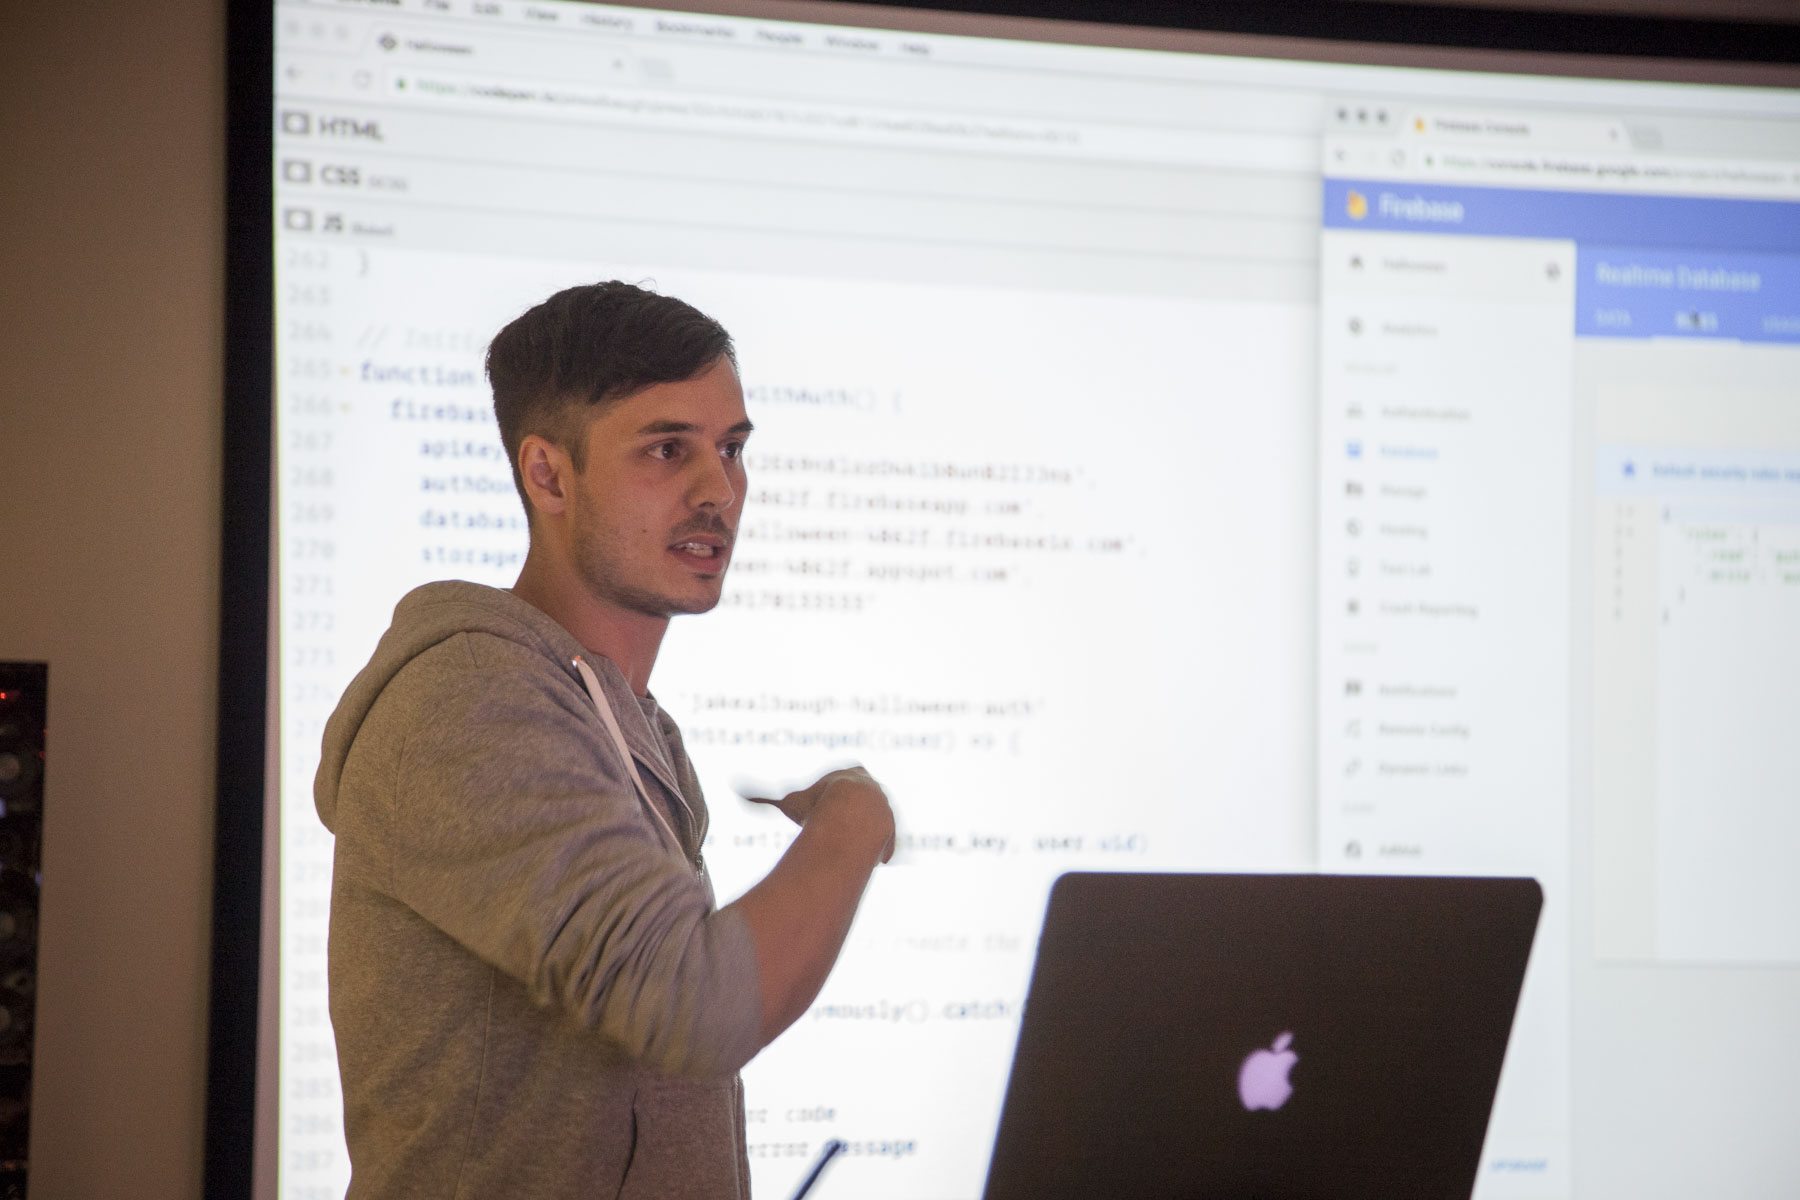 Jake Albaugh presenting at CodePen Chicago